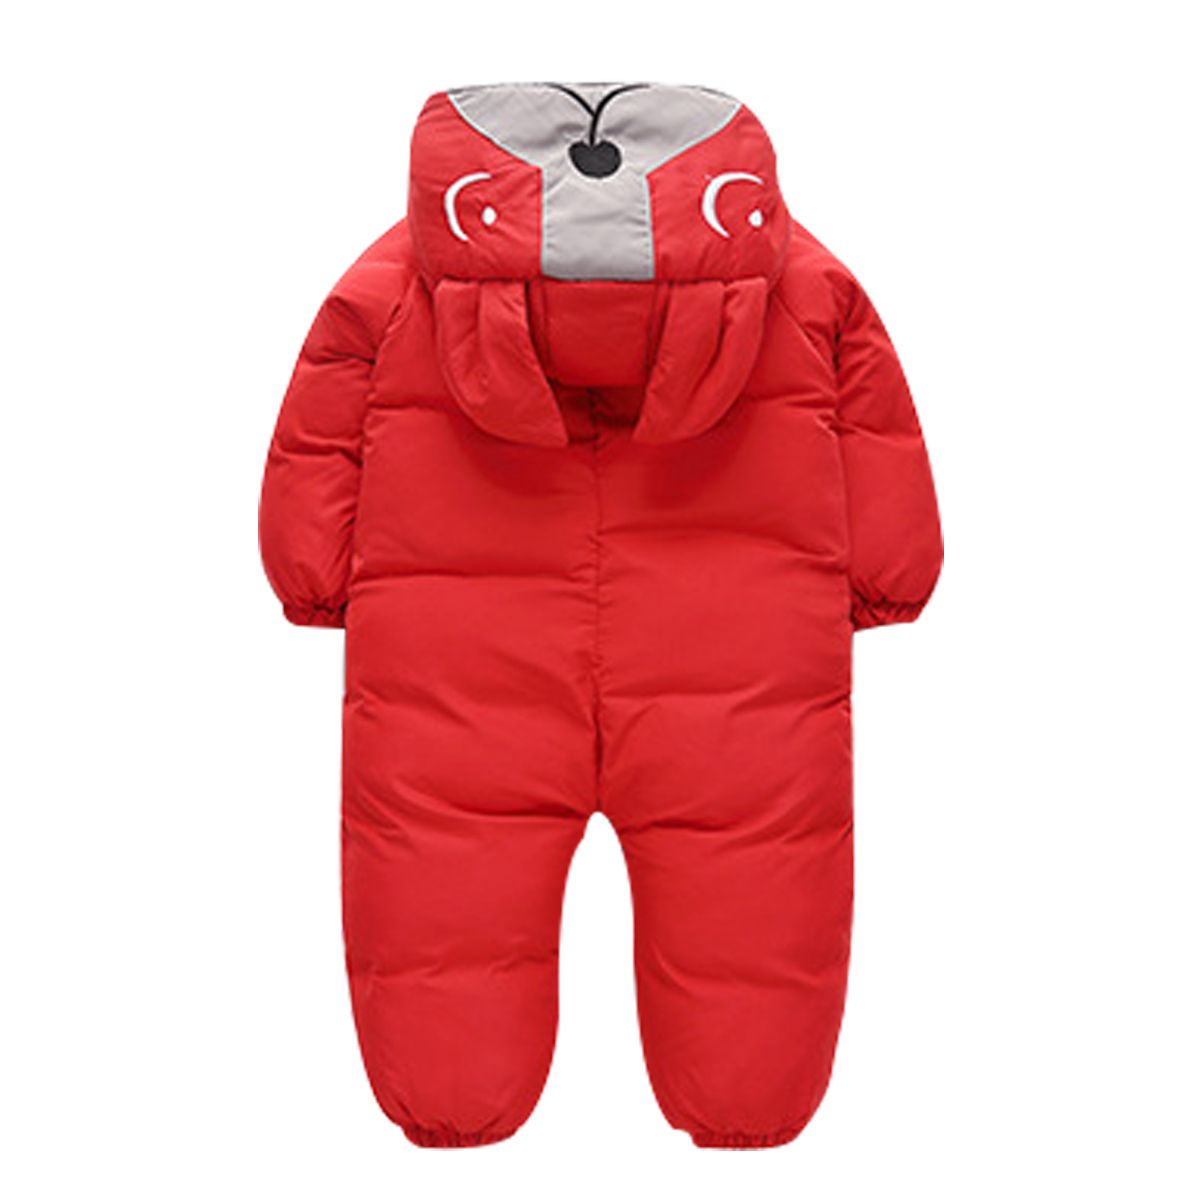 Curipeer Baby Boys Girls Snowsuit Infant Toddler Sleeveless Outfit Warm Winter Clothes Outwear Romper 1-6T